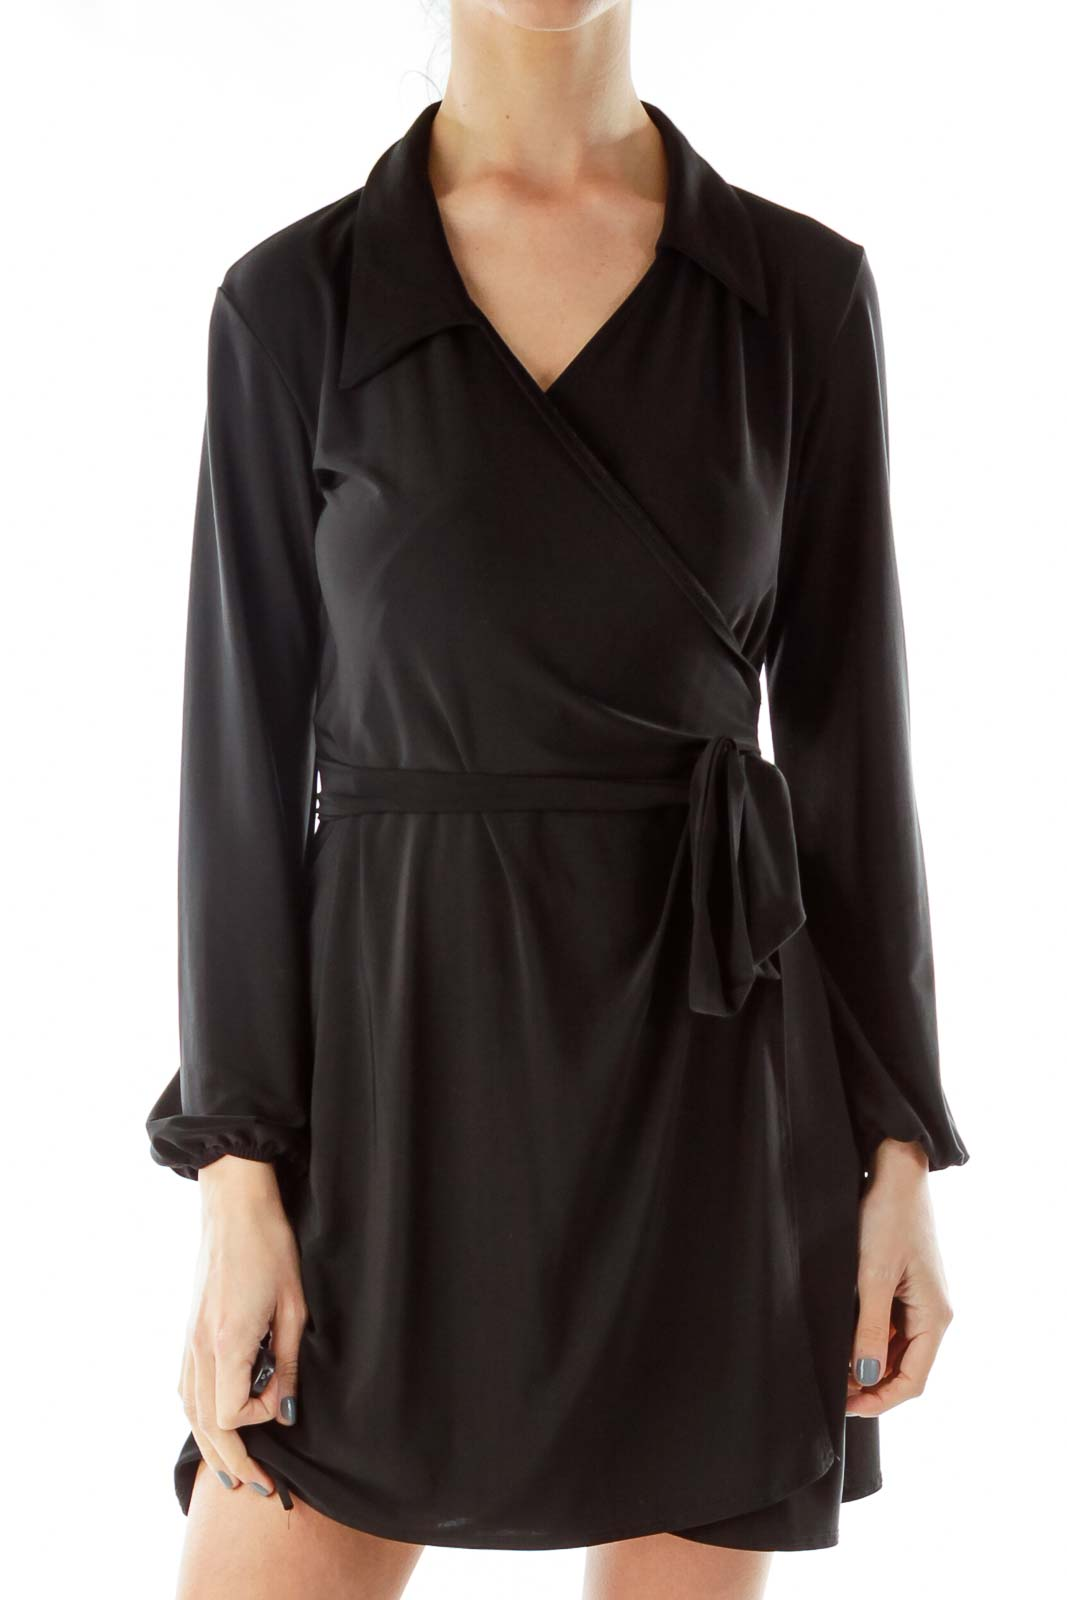 Black Wrap Work Dress Front